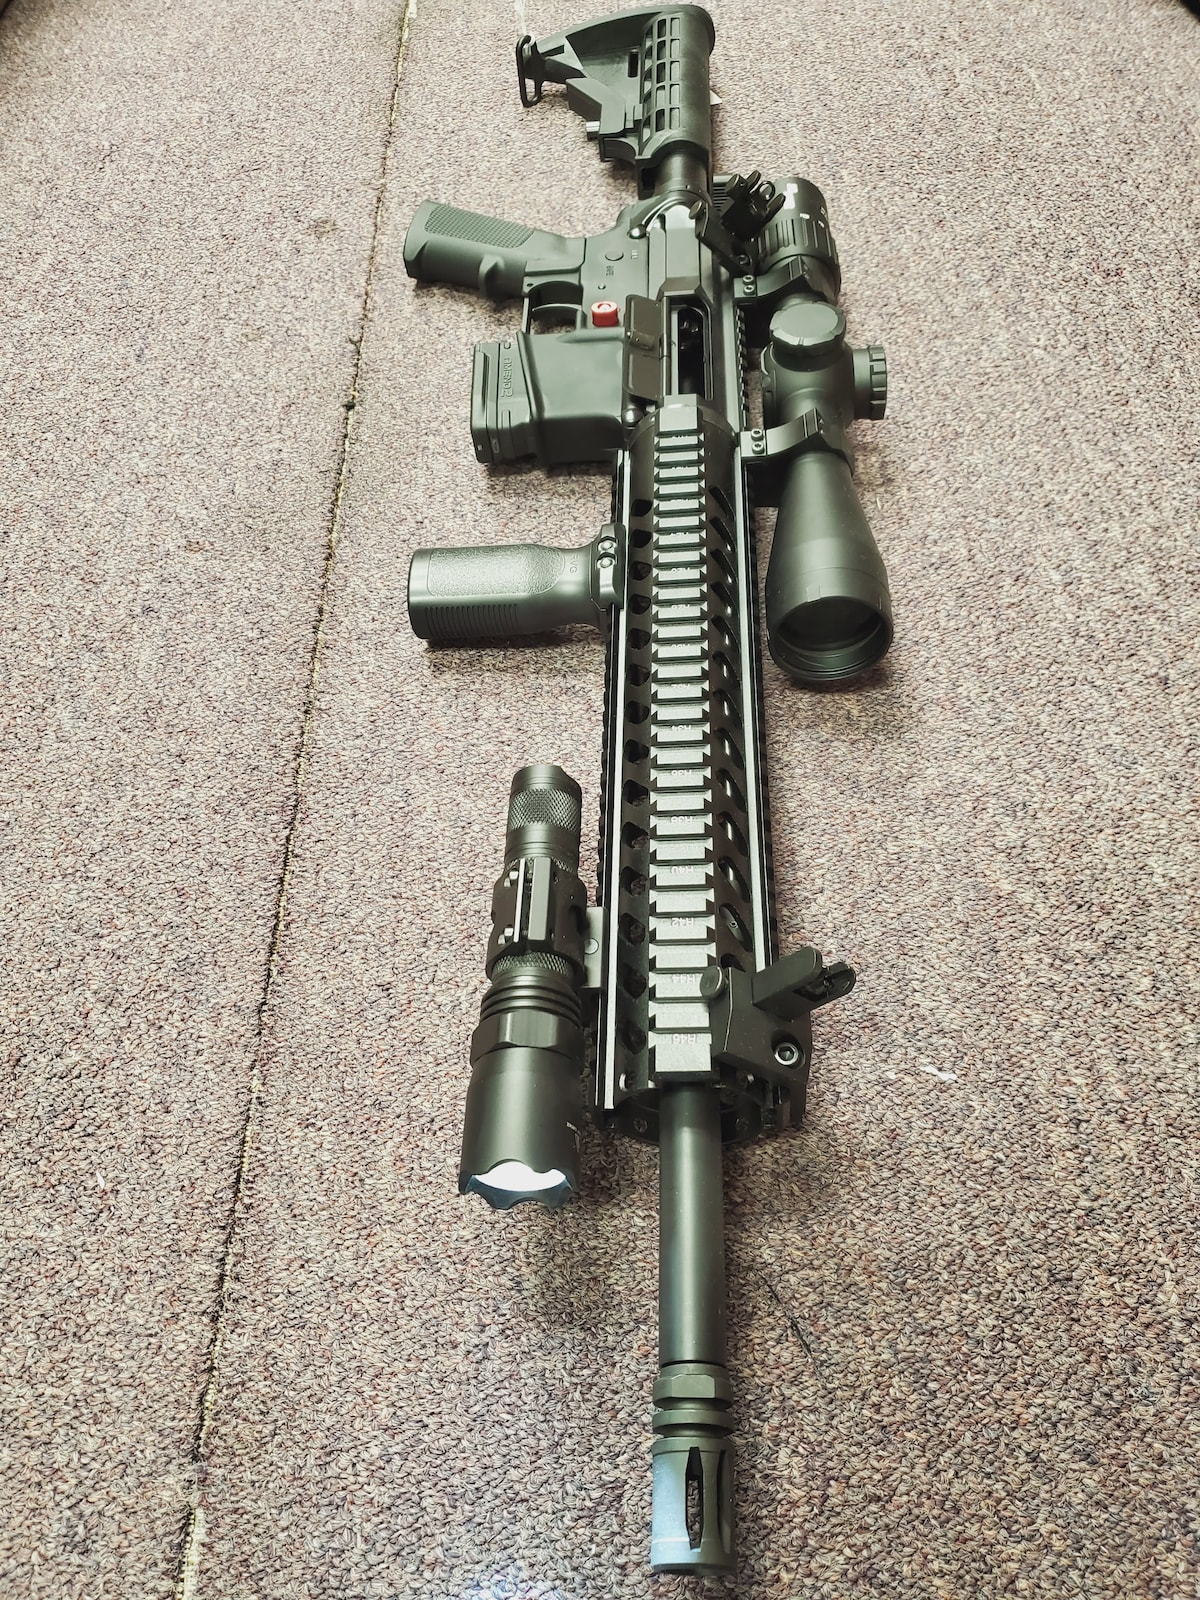 ANDERSON MANUFACTURING fully loaded edition fixed magazine m4 ar15 am15